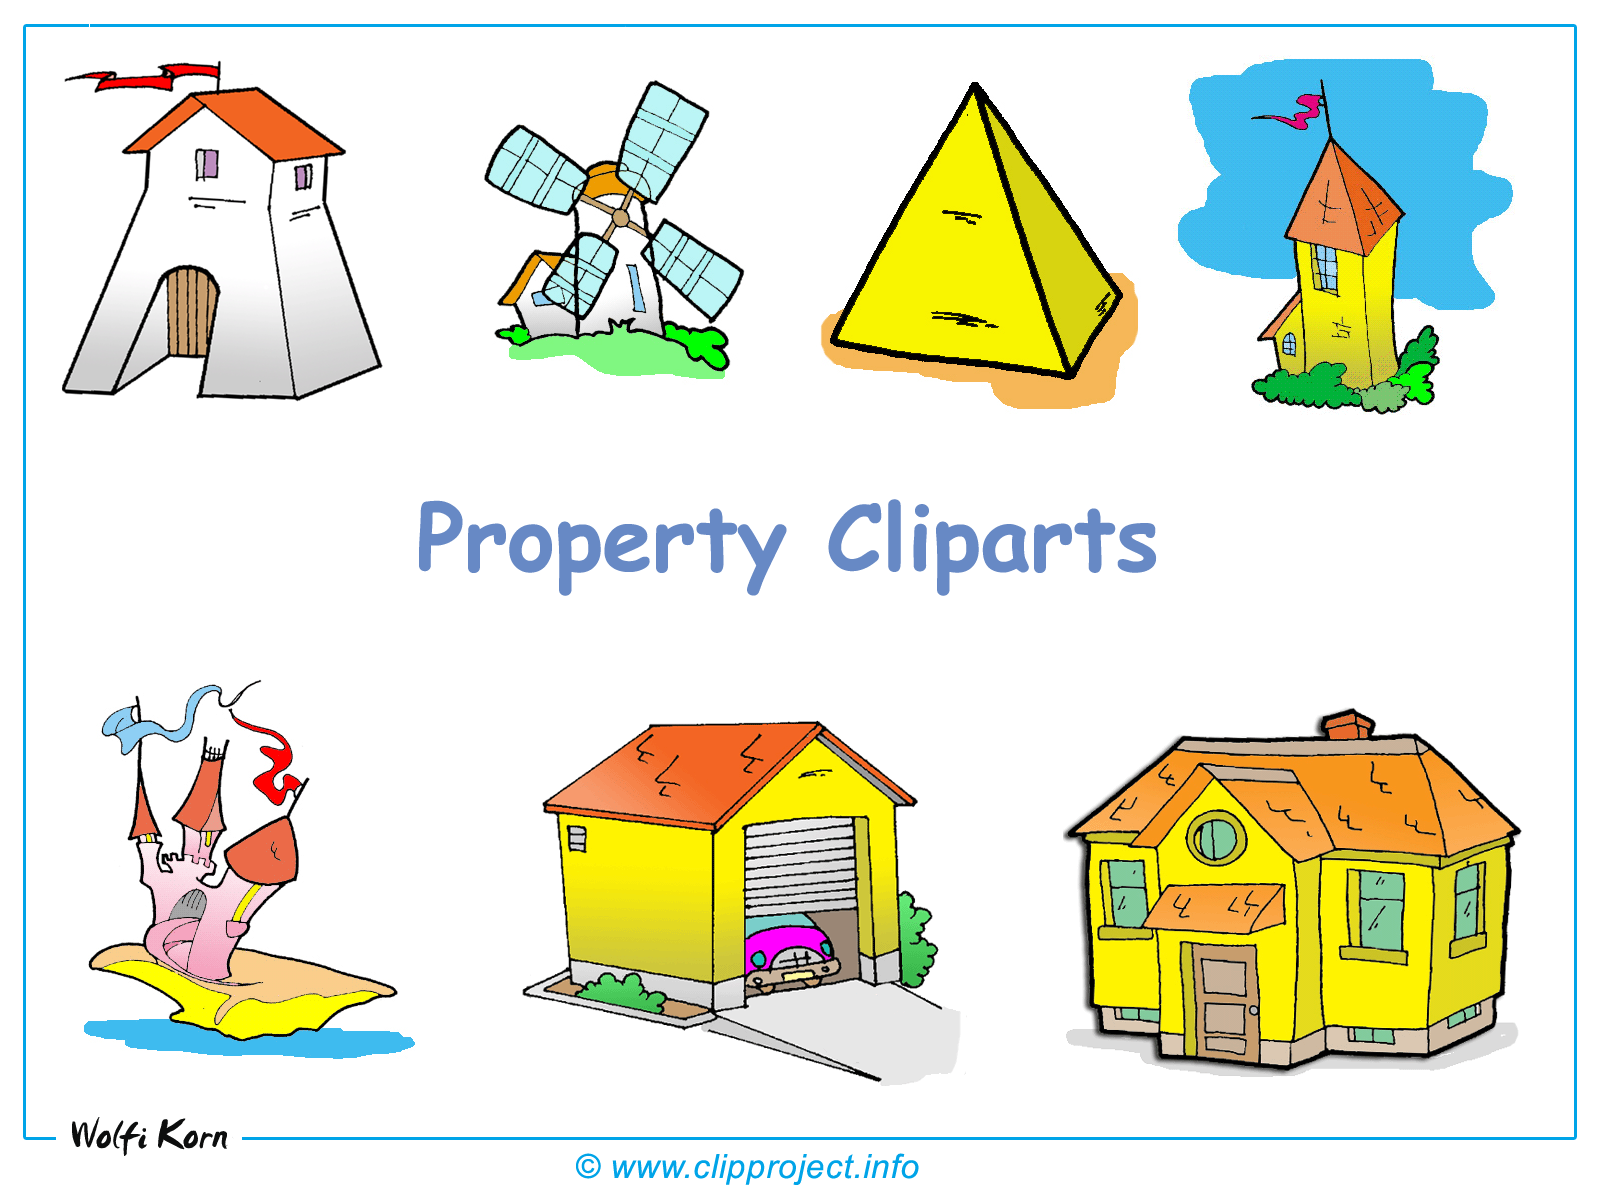 clipart zierrahmen download - photo #8